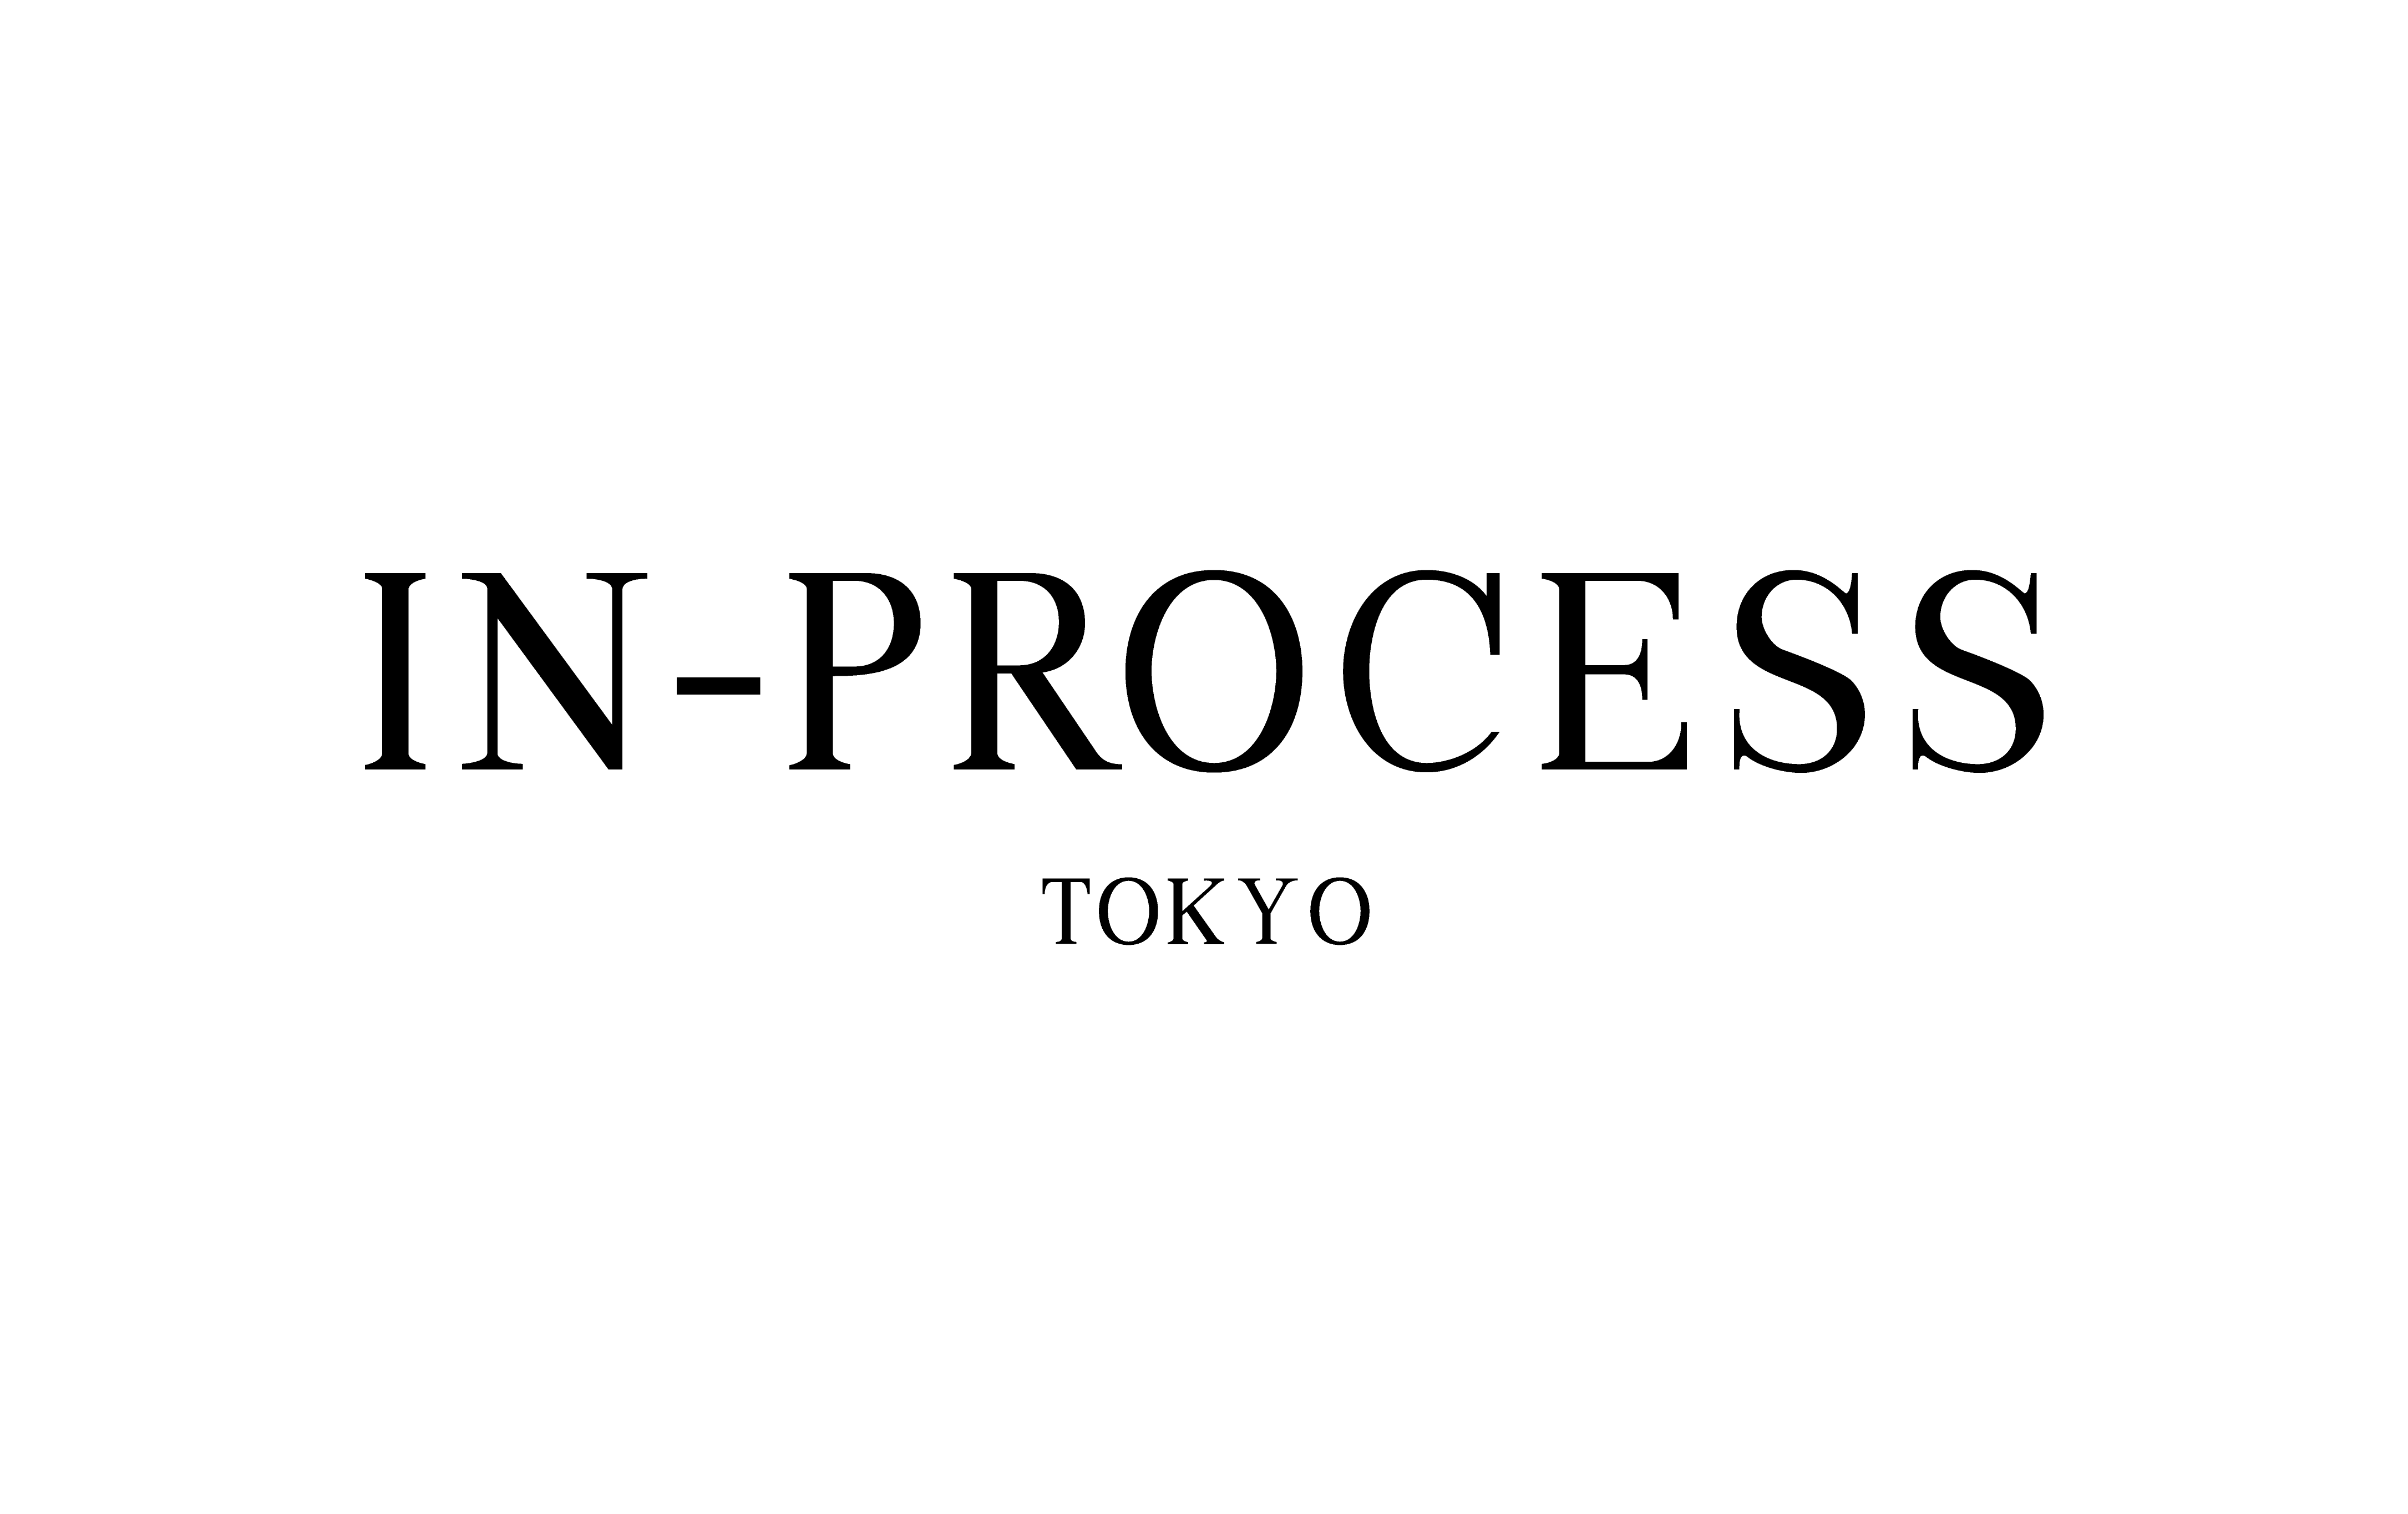 IN-PROCESS Tokyo